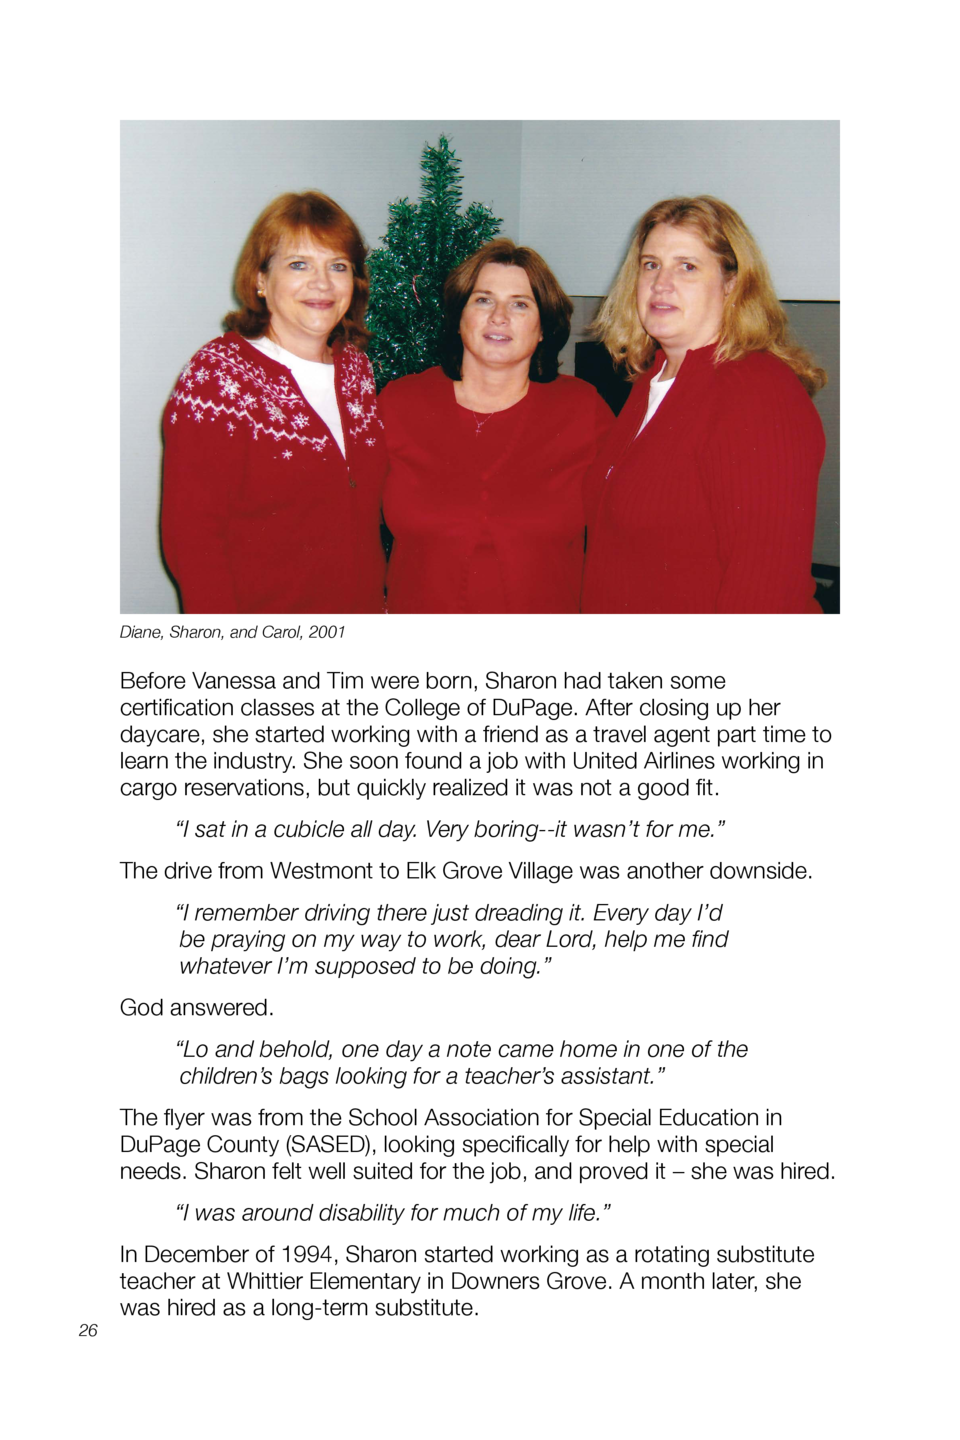 Diane, Sharon, and Carol, 2001  Before Vanessa and Tim were born, Sharon had taken some certification classes at the Colle...